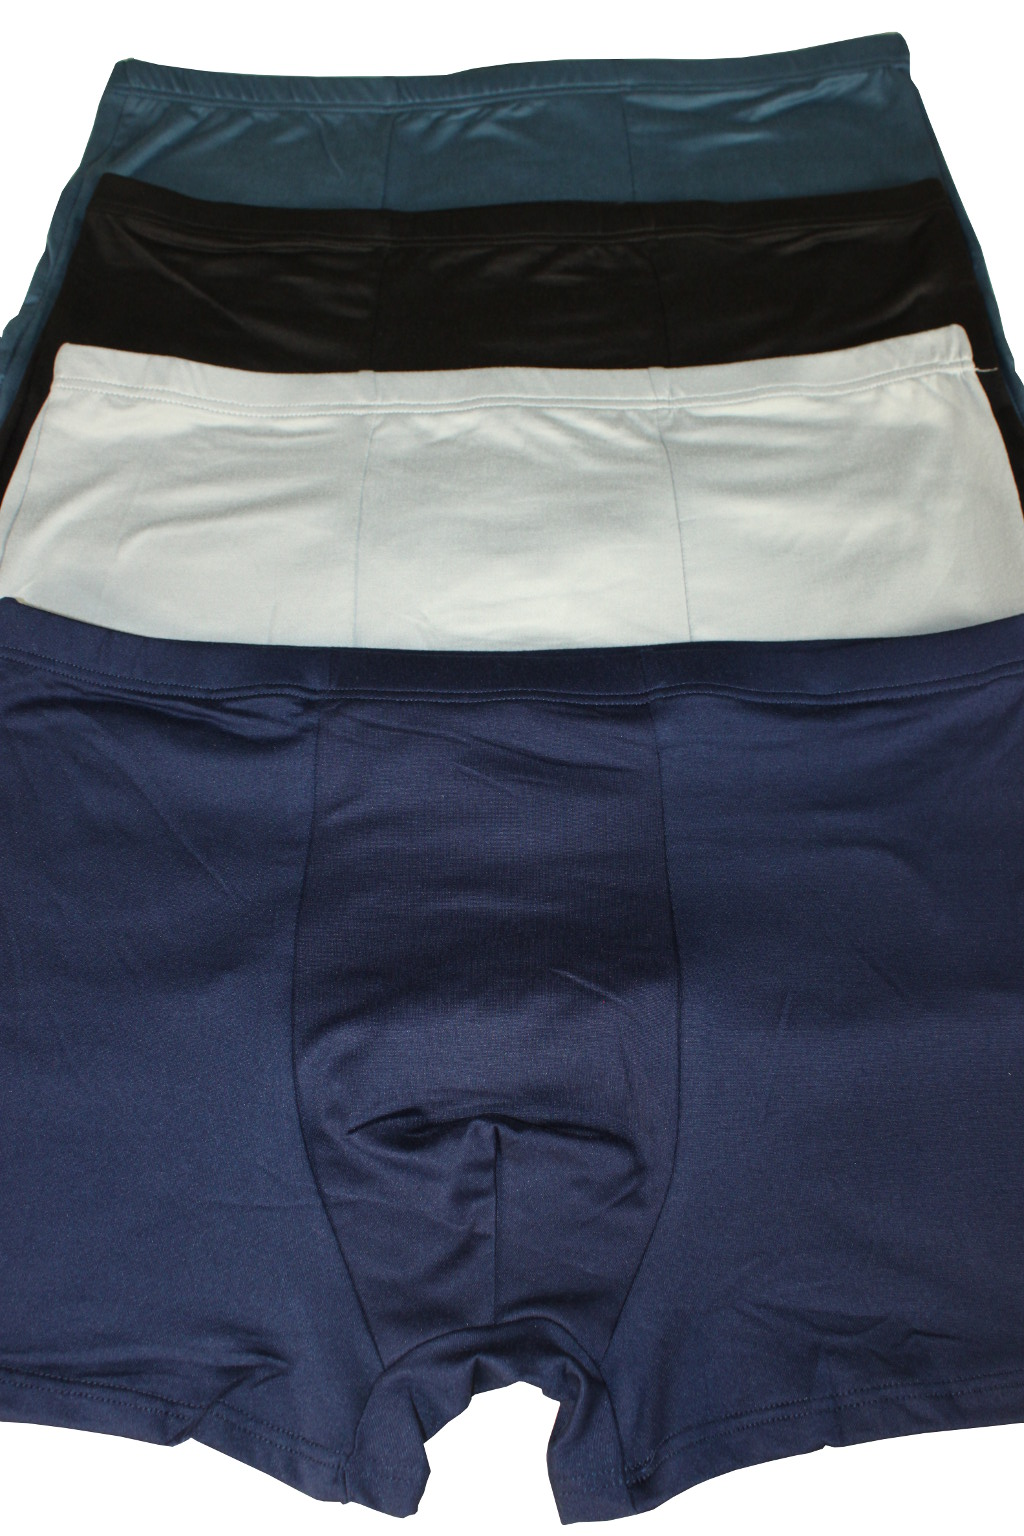 Gentleman Bambus Boxer 3Pack 3XL MIX